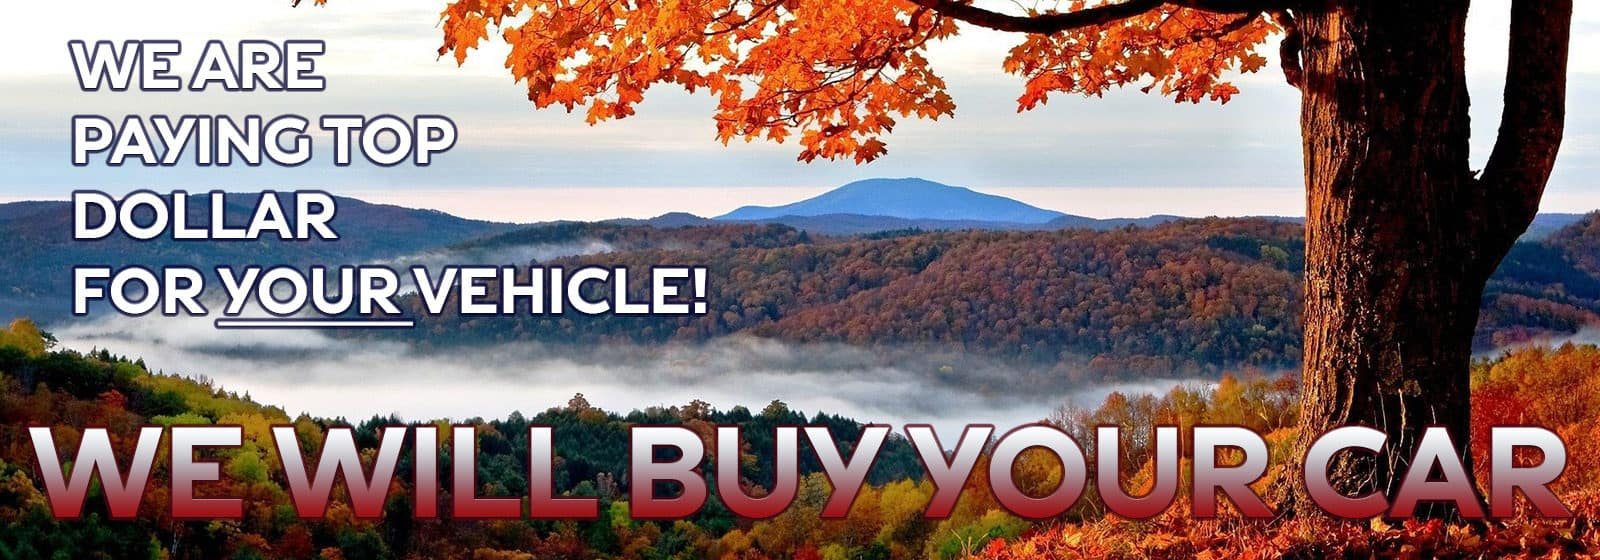 We Will Buy Your Vehicle!